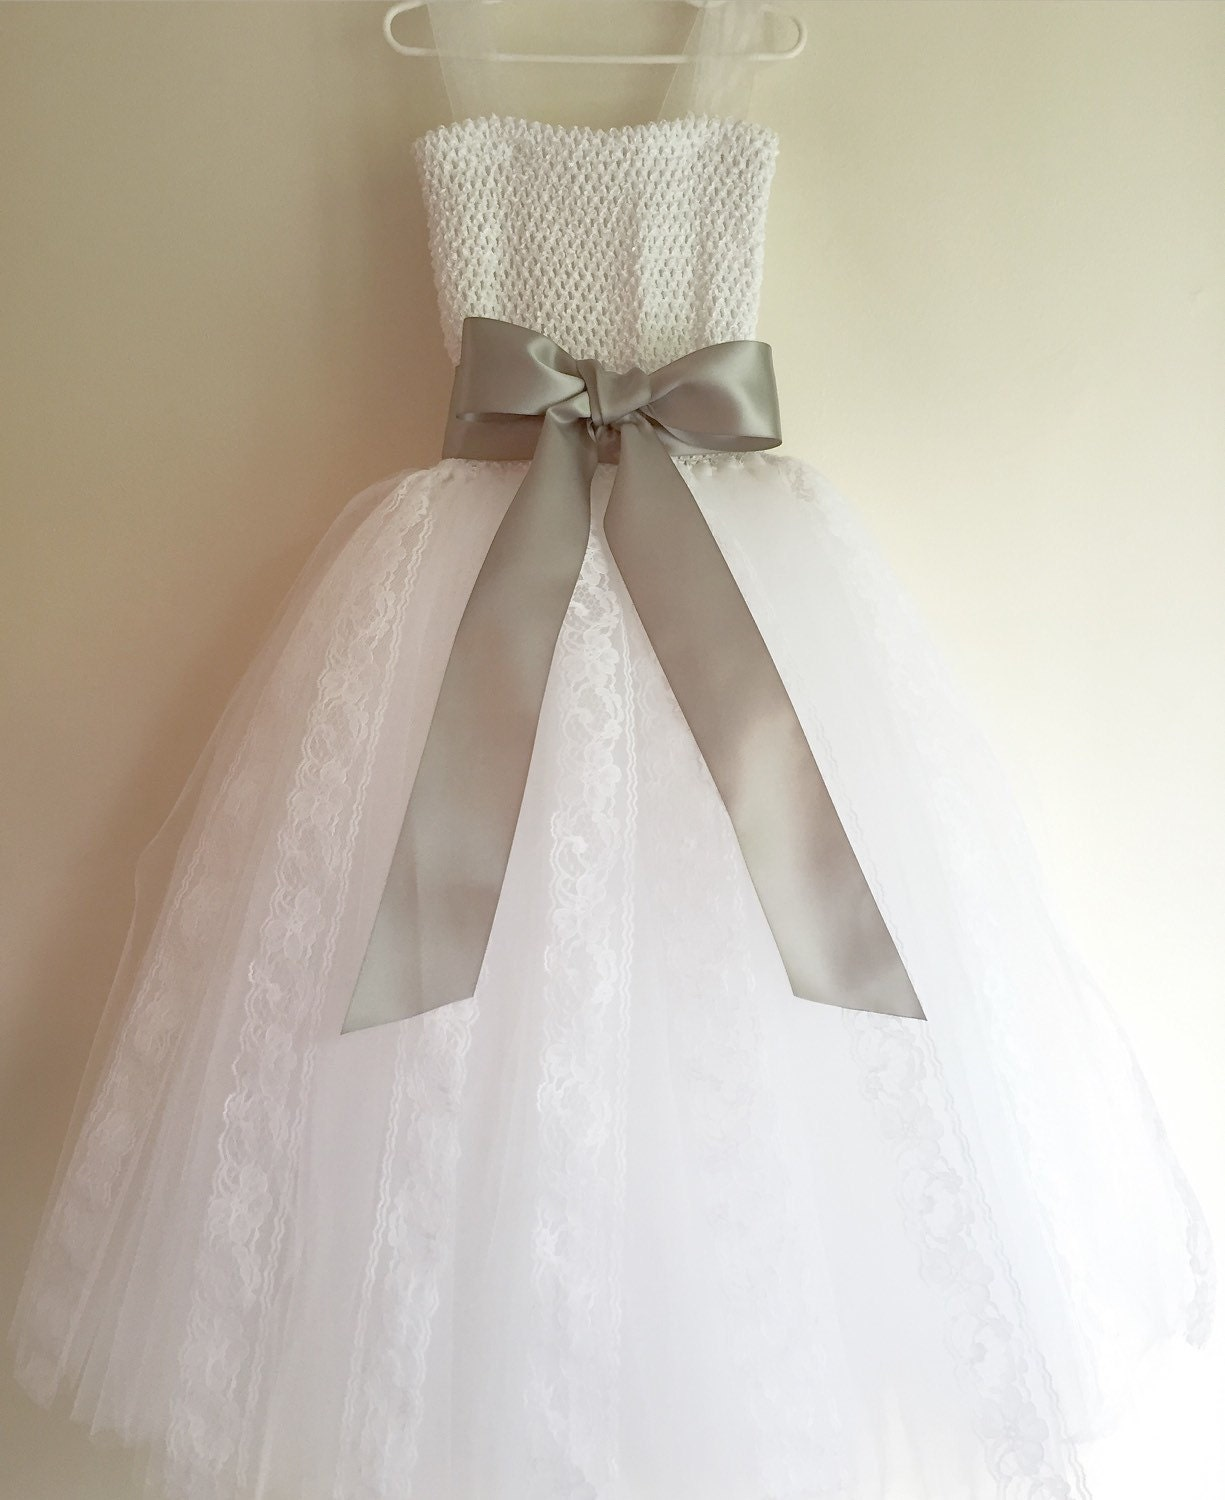 White Tulle & Lace Flower Girl Dress Lace and Tulle White